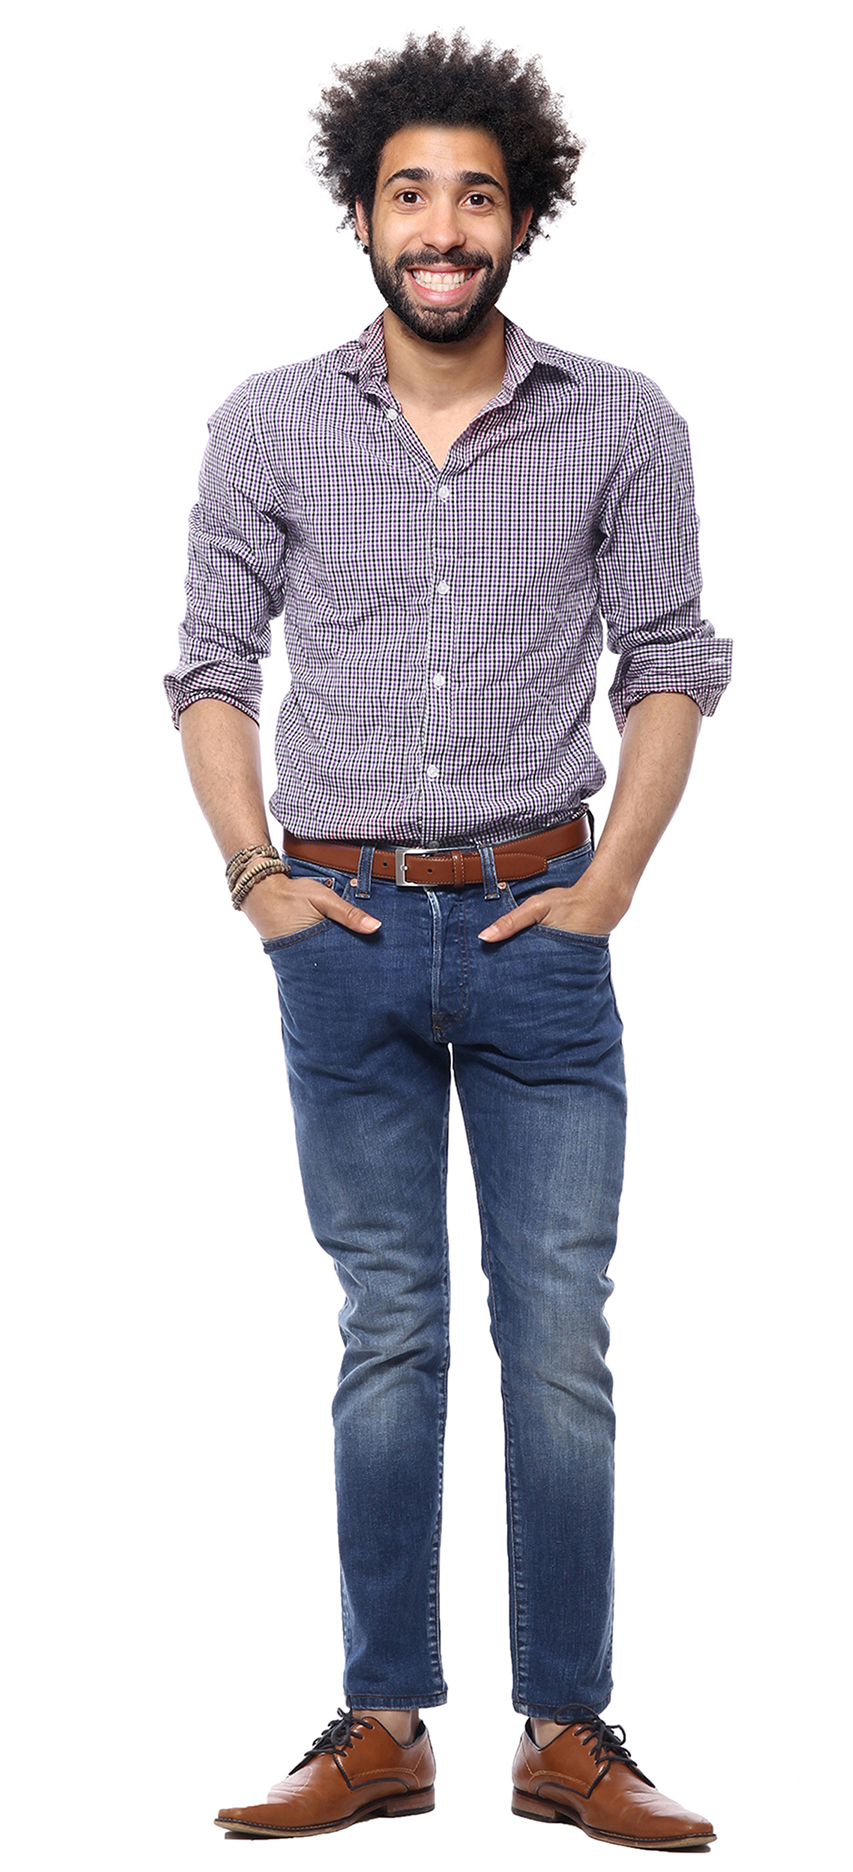 A man wearing a button-down, jeans, and oxfords stands confidently with his hands in his pockets.